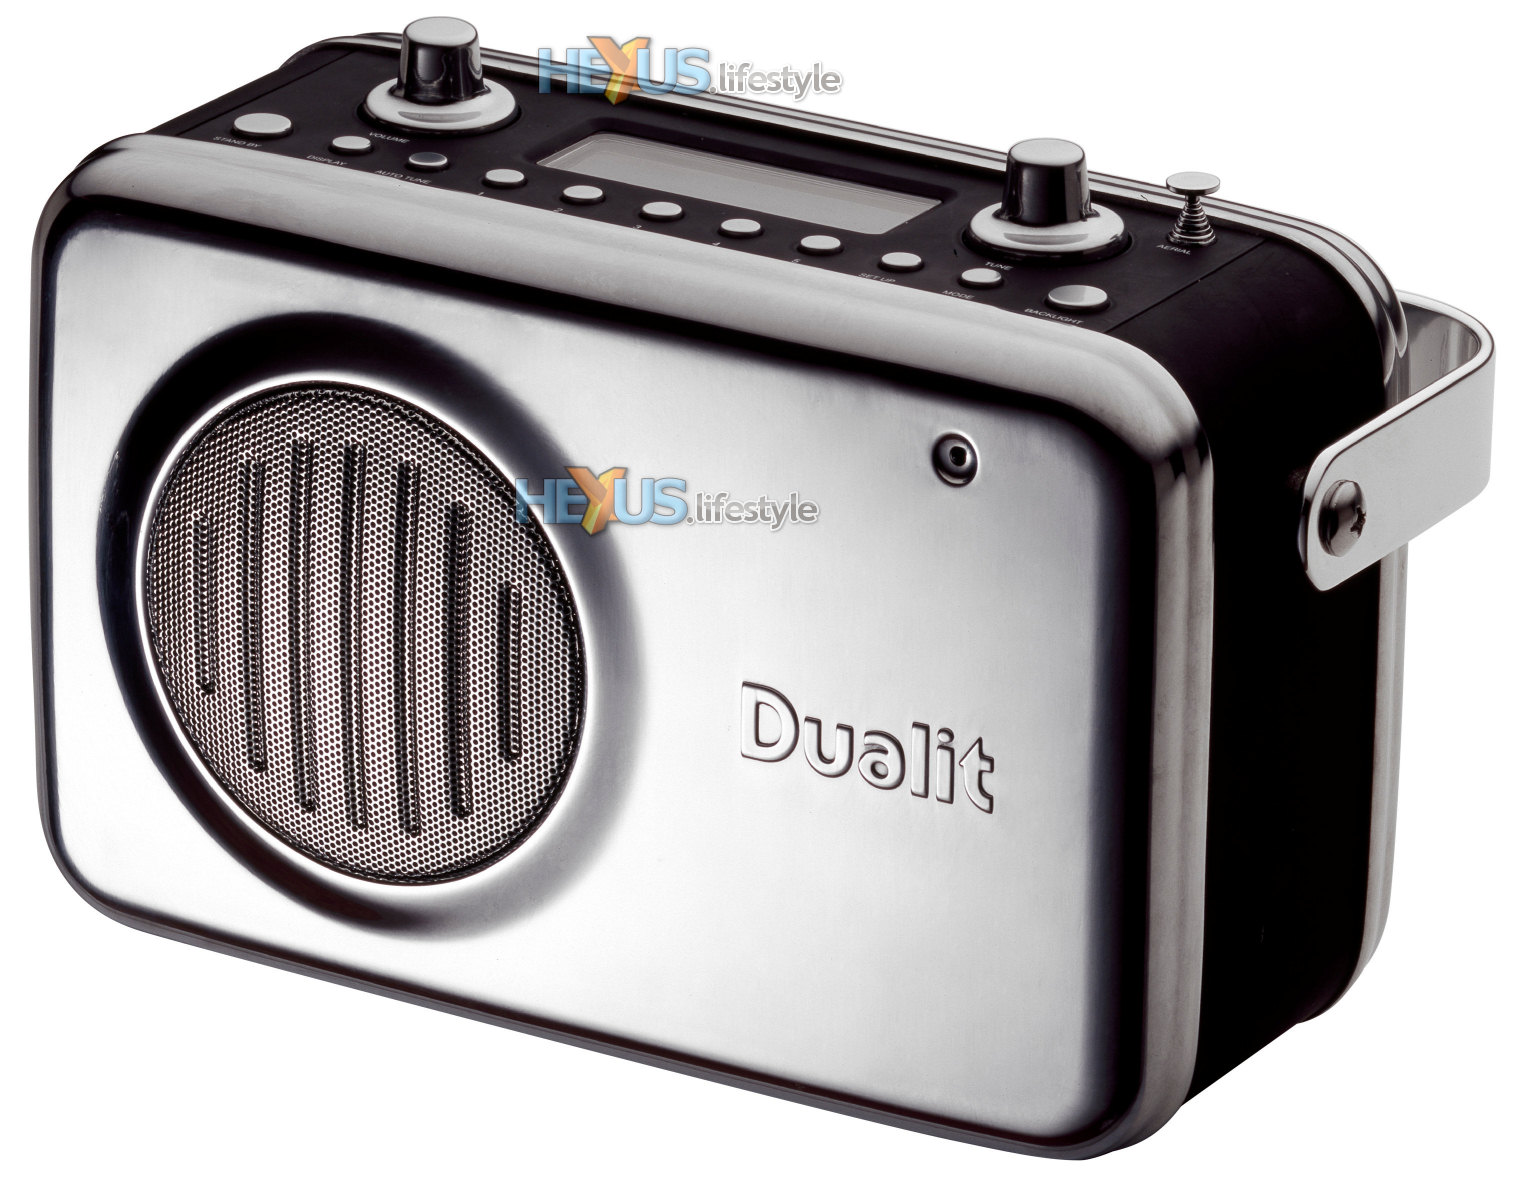 DAB/FM radio for the kitchen an instant classic says Dualit - Audio ...